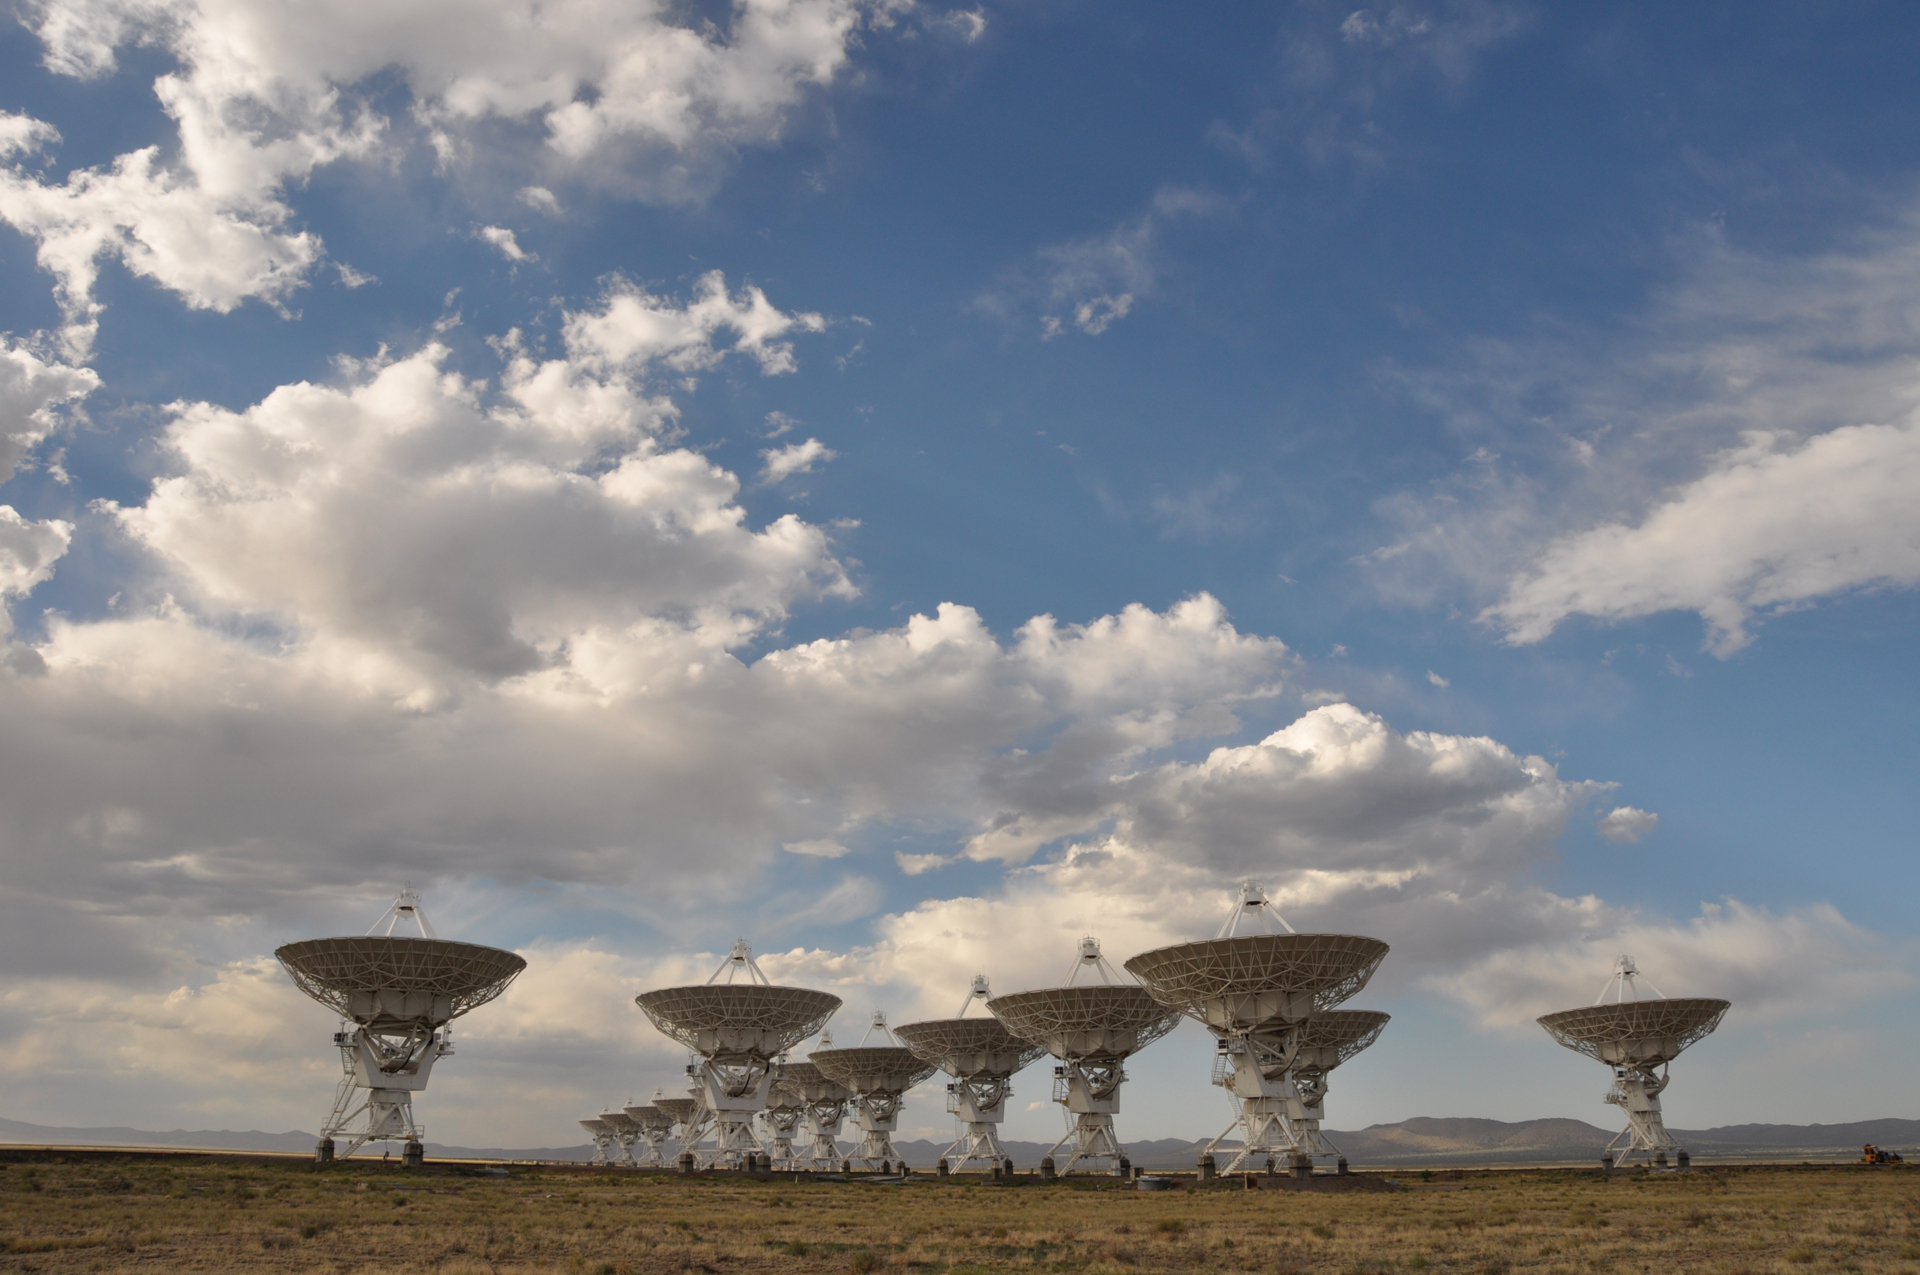 The VLA in maintenance mode